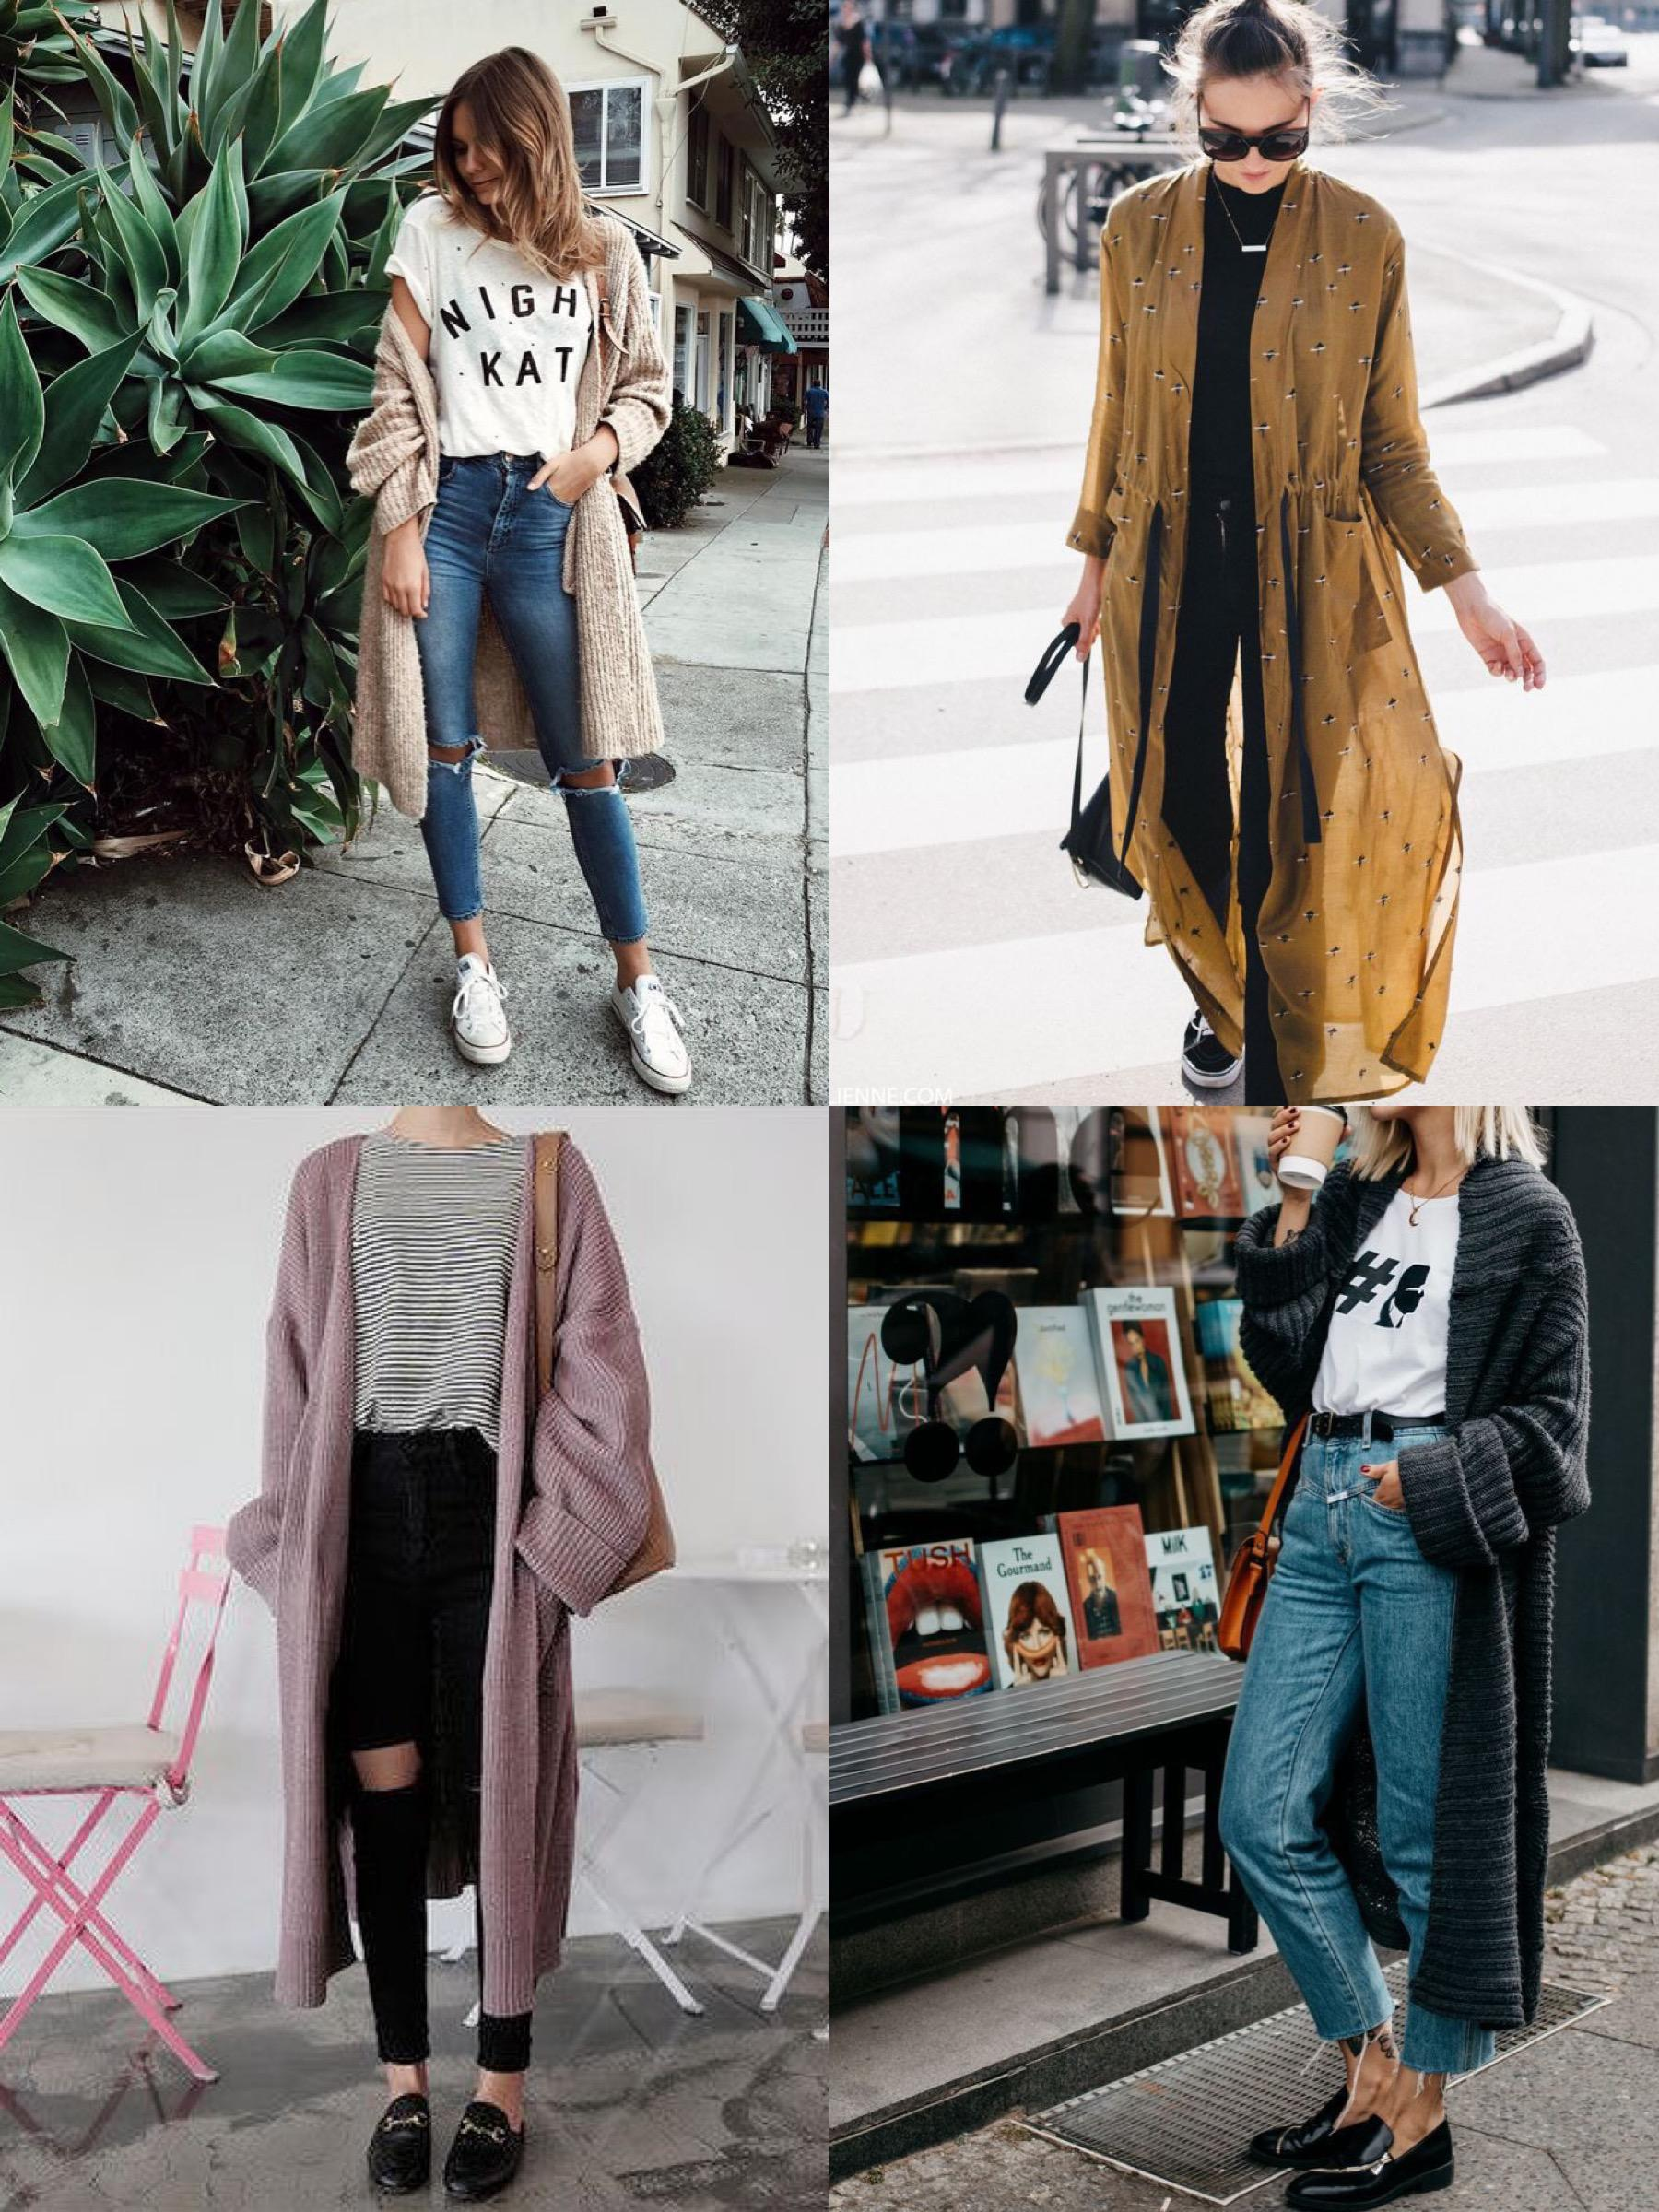 20 Must-Have Fashion Items For Endless Outfit Combos